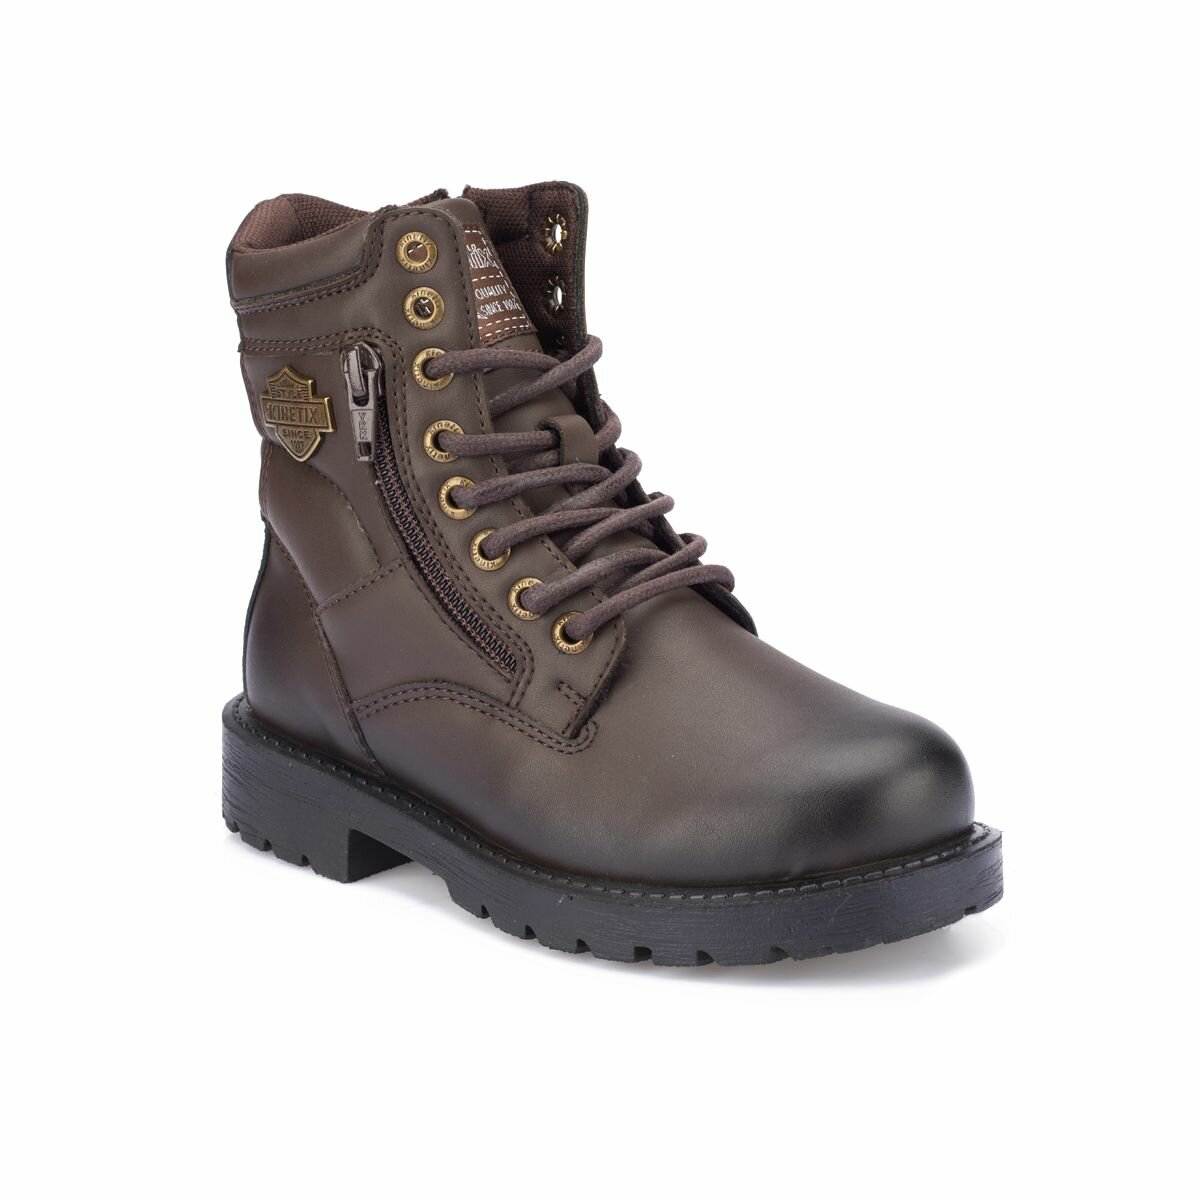 FLO DUTSY Brown Male Child Boots KINETIX